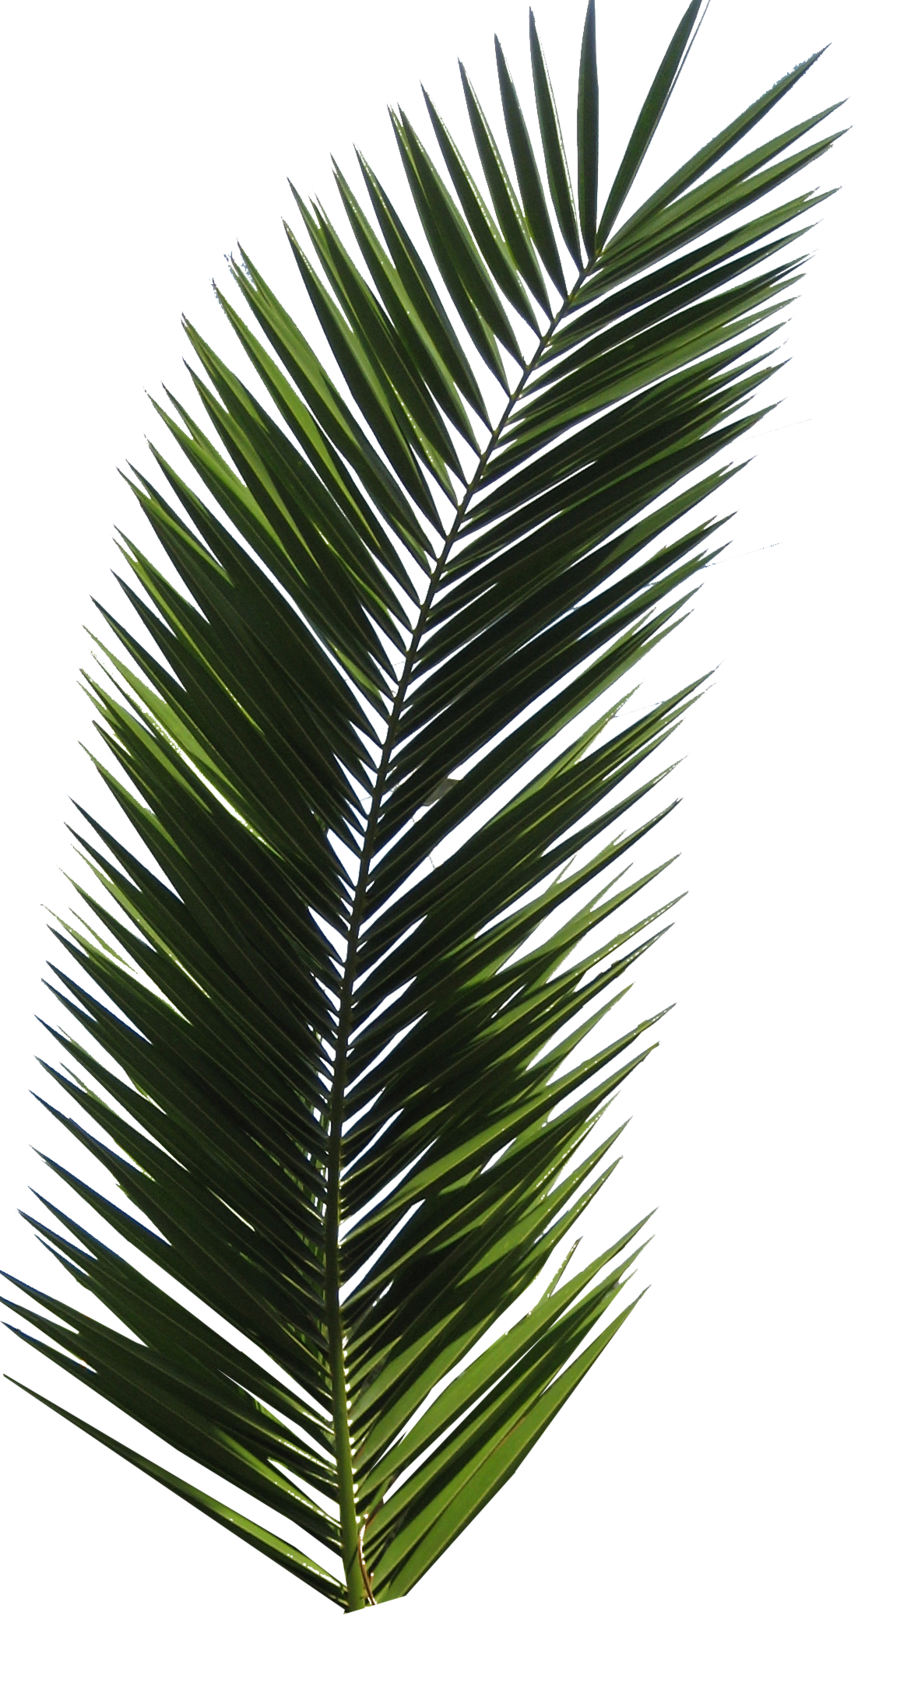 Png palm leaf. Tree images download free